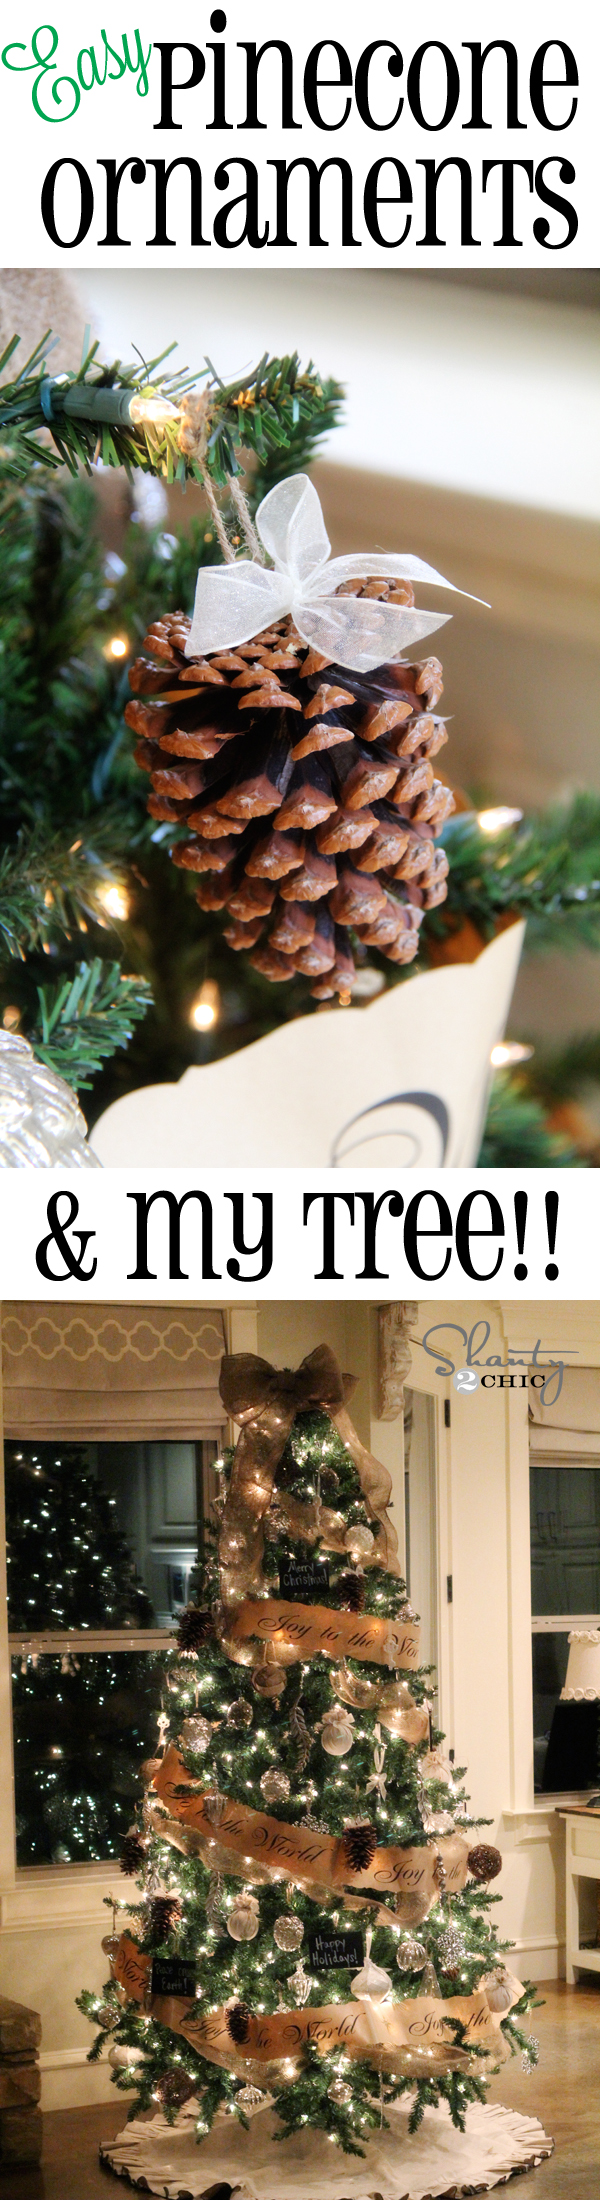 Diy pinecone ornaments my tree shanty 2 chic more solutioingenieria Images